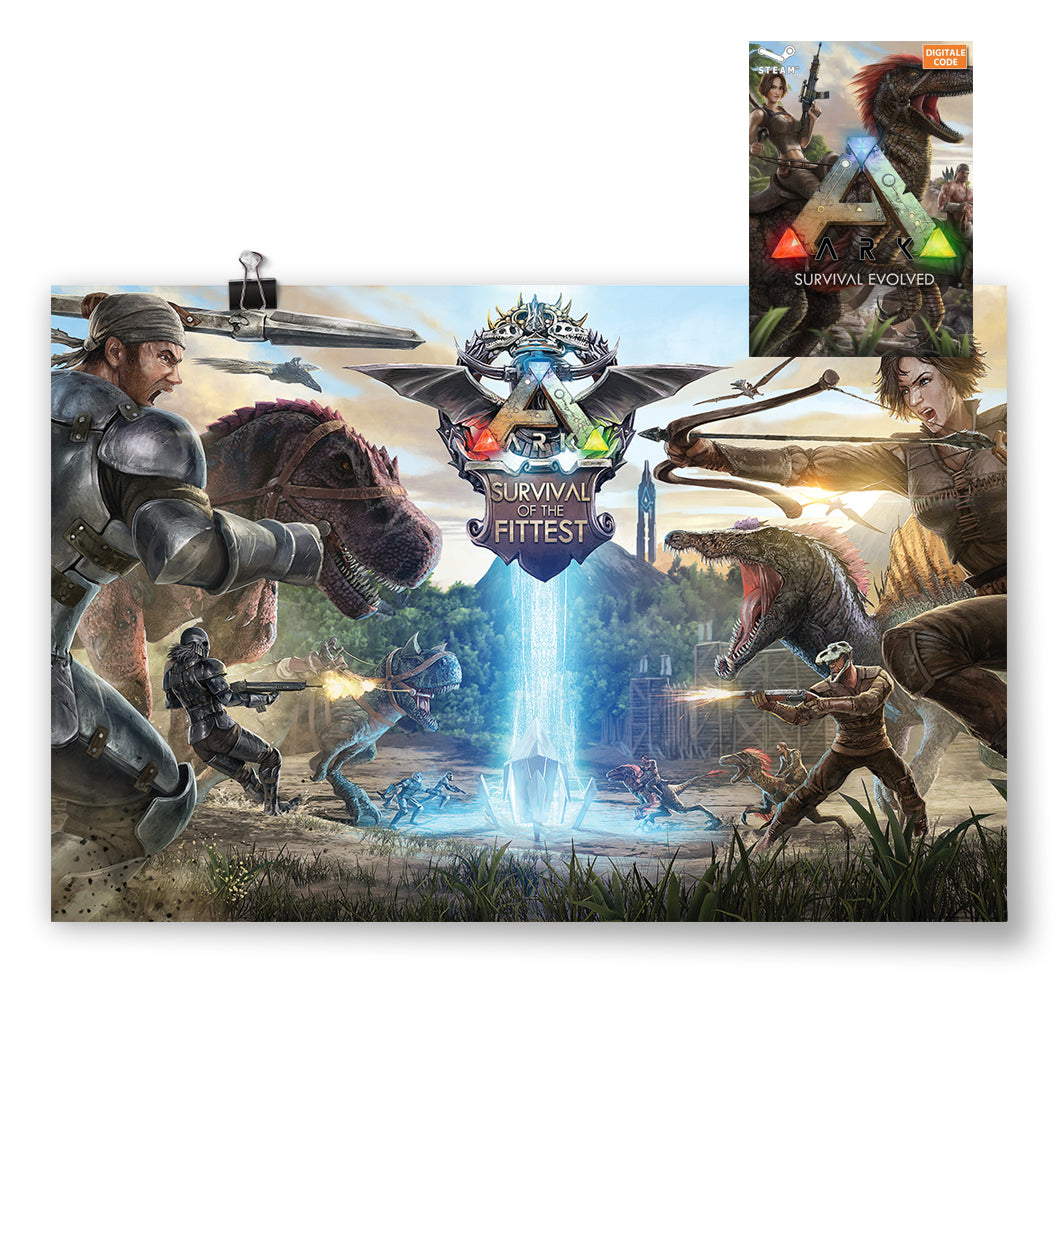 ARK: Survival of the Fittest Poster + Game Bundle